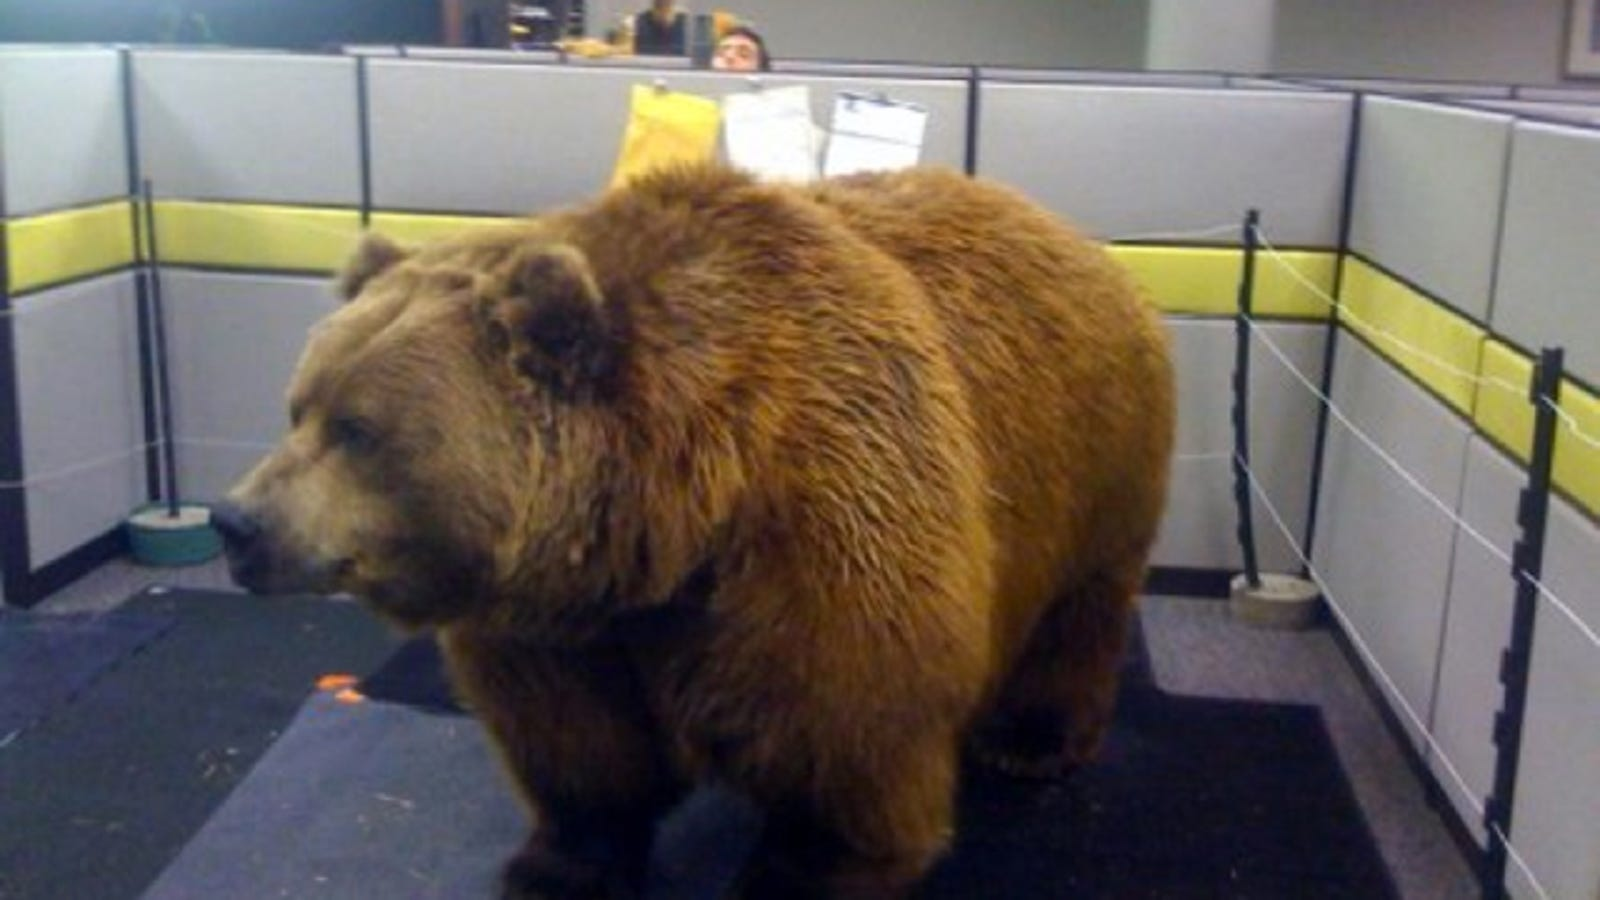 this is proof that office cubicle pranks have gone way too far